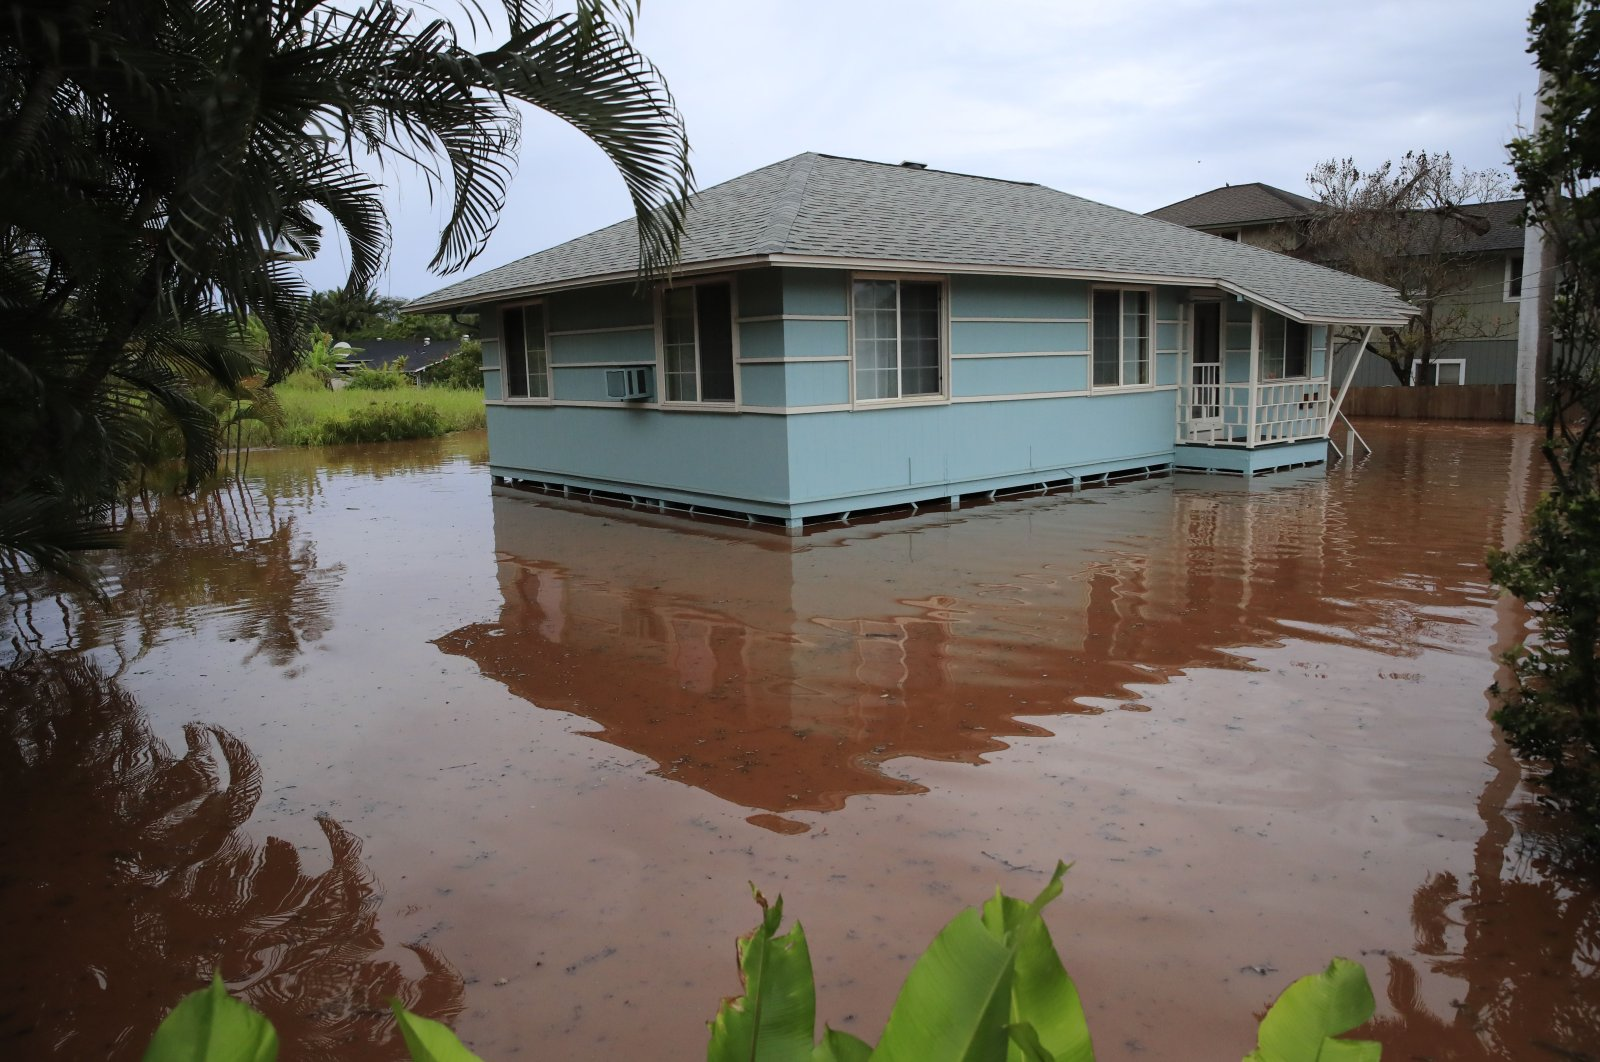 A house on Haleiwa Road is surrounded by floodwaters in Haleiwa, Hawaii, March 9, 2021. (AP Photo)